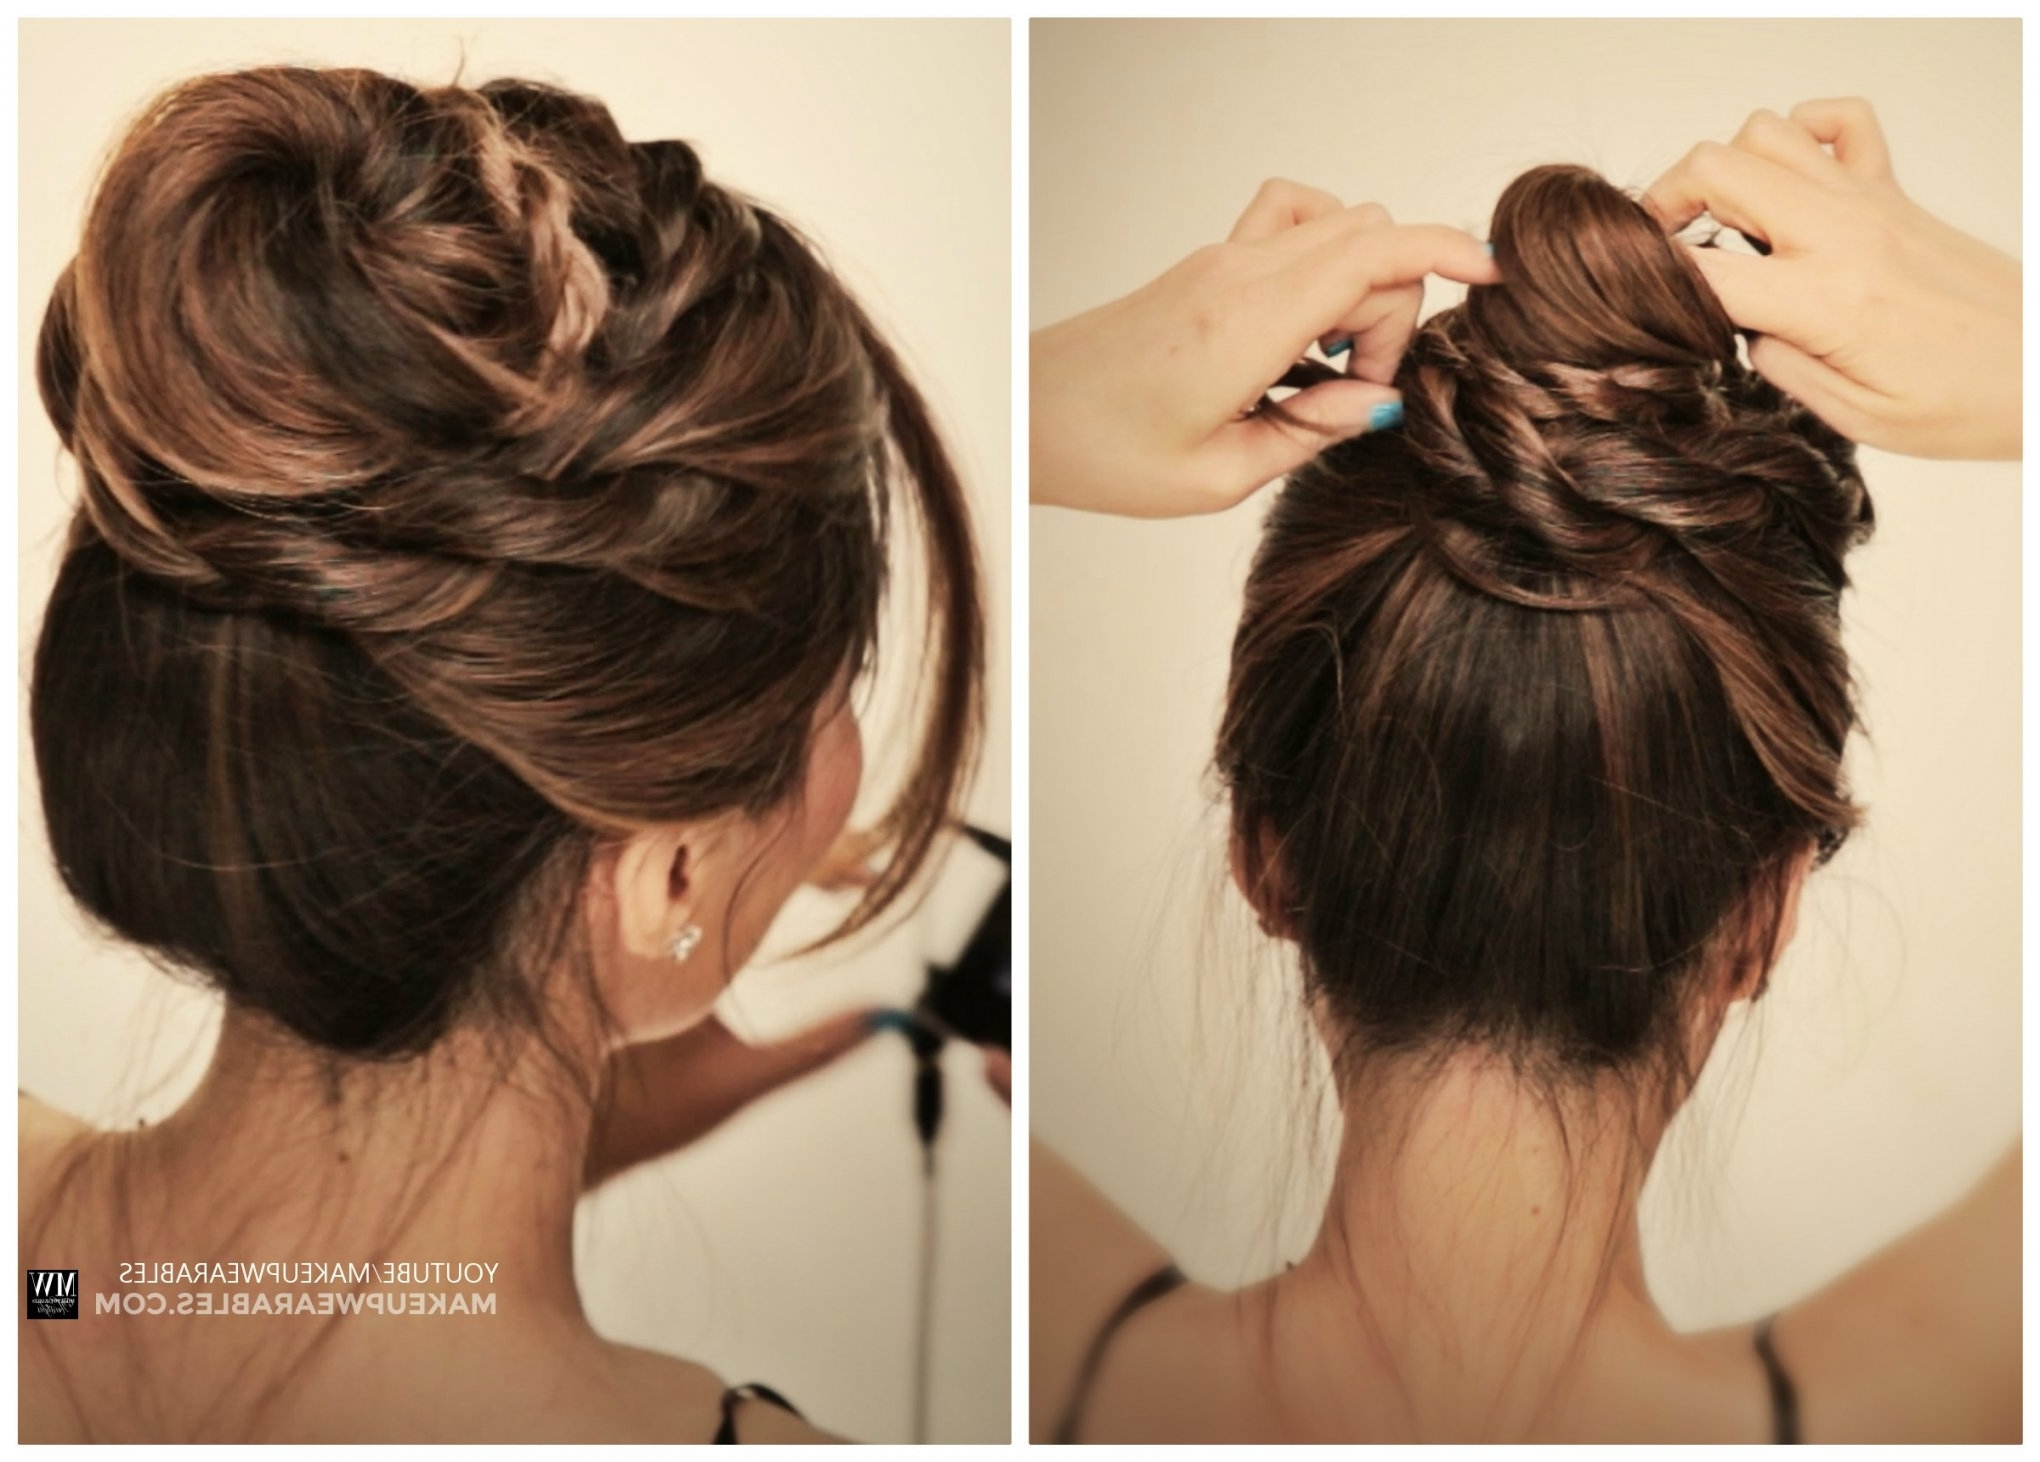 How To: 5 Amazingly Cute + Easy Hairstyles With A Simple Twist In Cute Easy Updos For Long Hair (View 4 of 15)